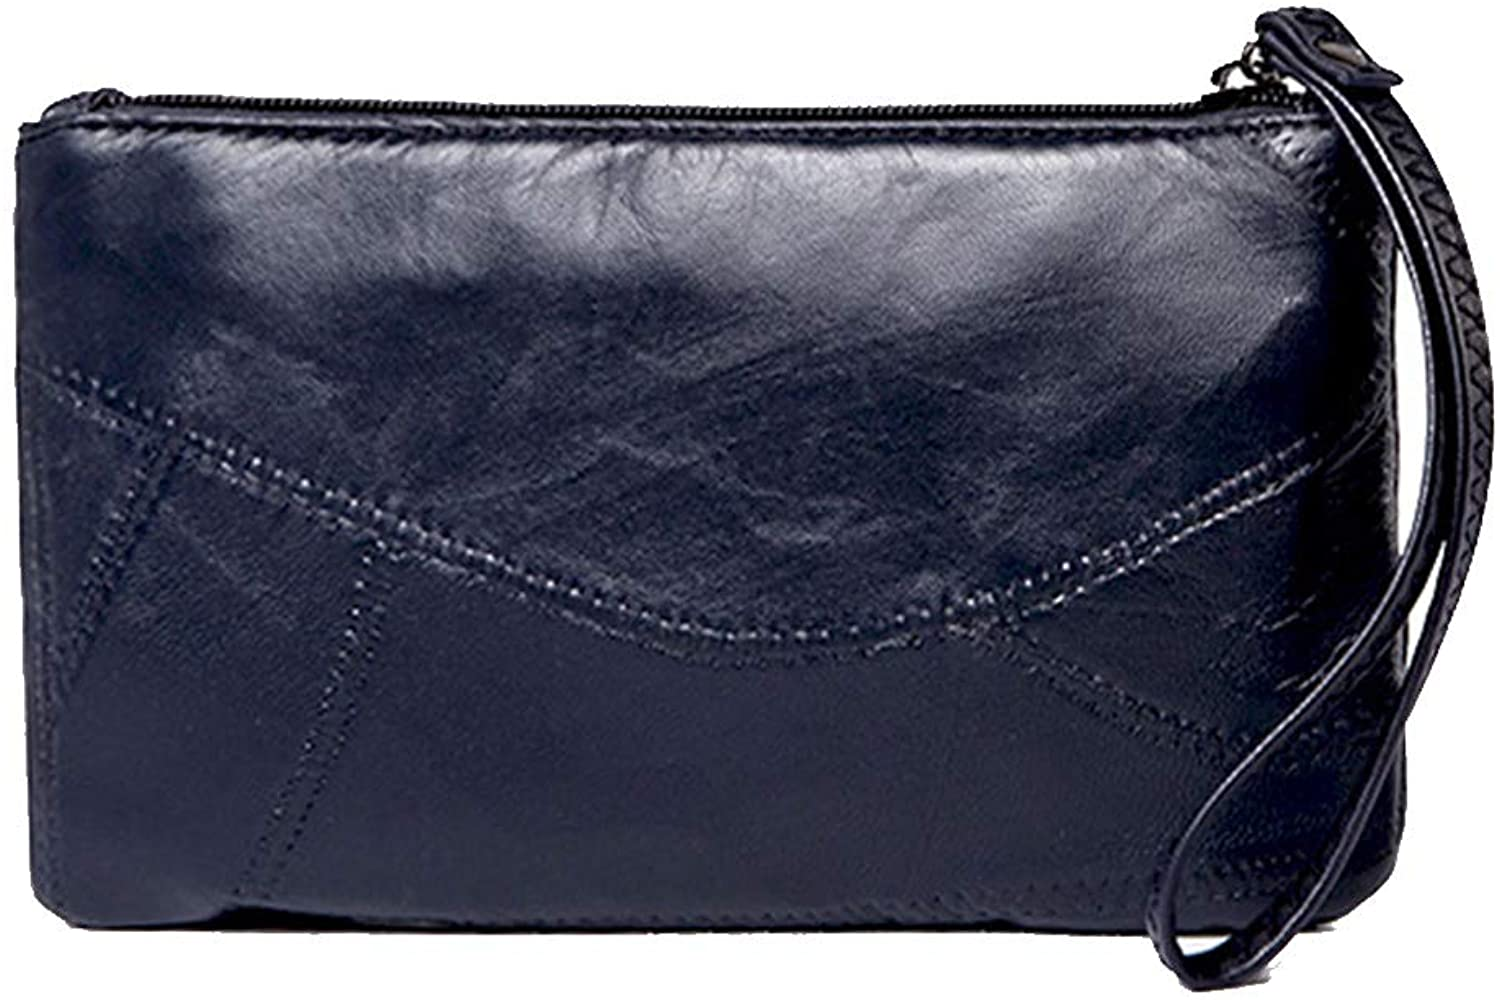 Oichy Clutch Handbag for Women Small Wristlet Phone Purse Leisure Leather Bag for Ladies